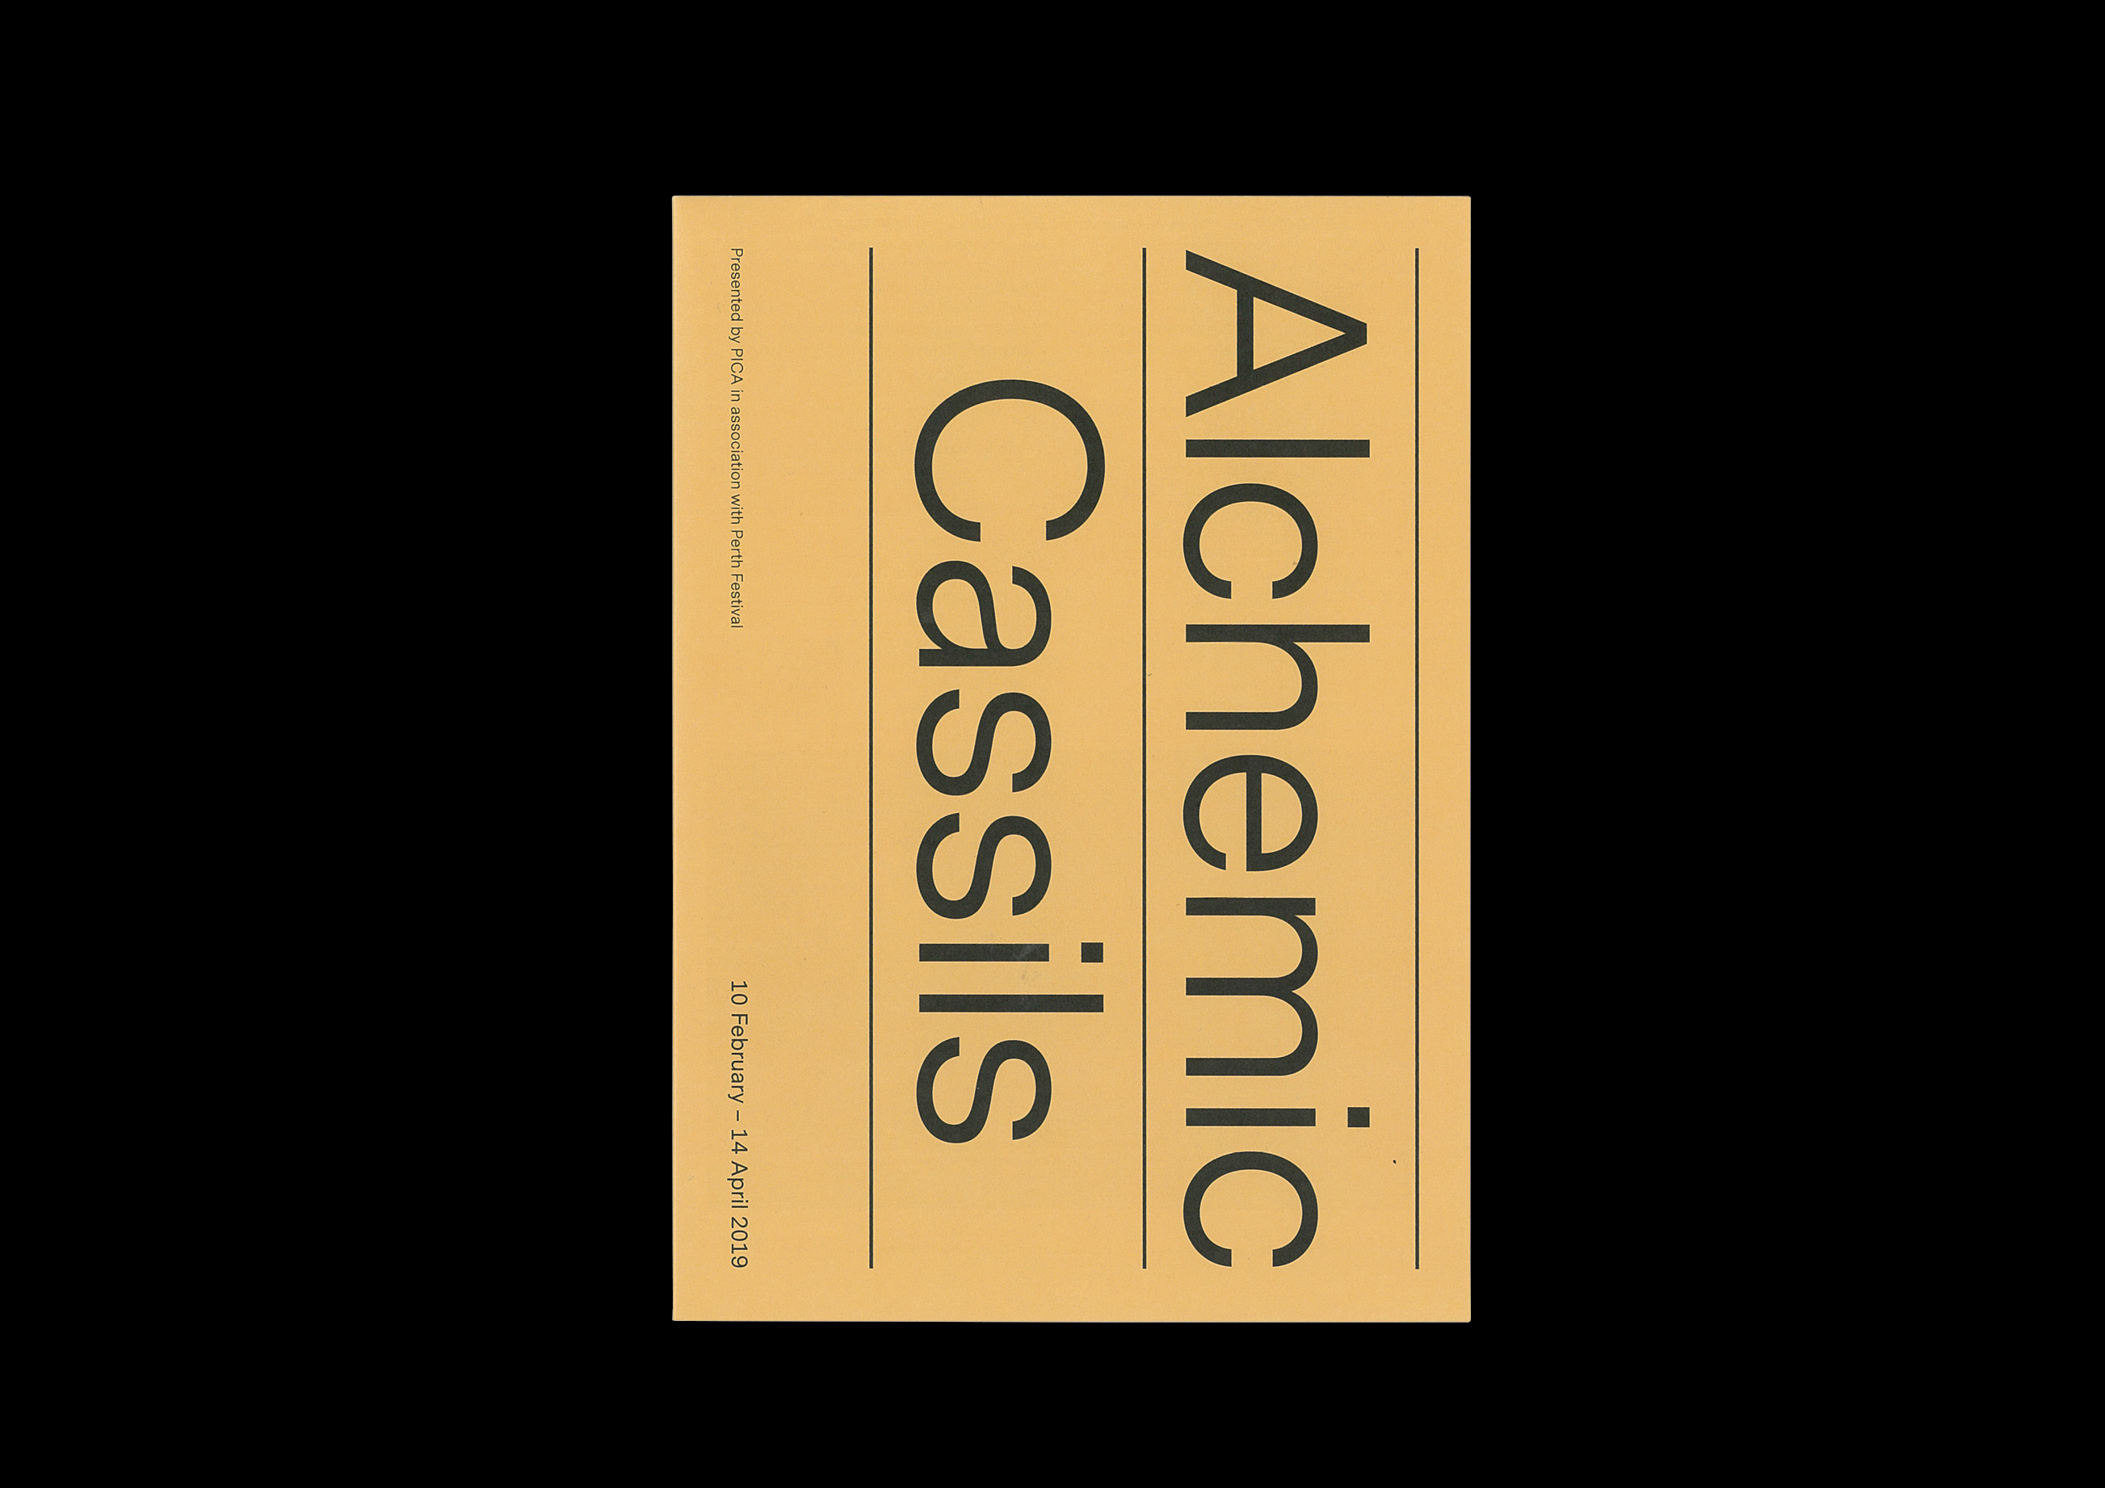 2019 Design and Direction For artist Cassils project at PICA 'Alchemic'